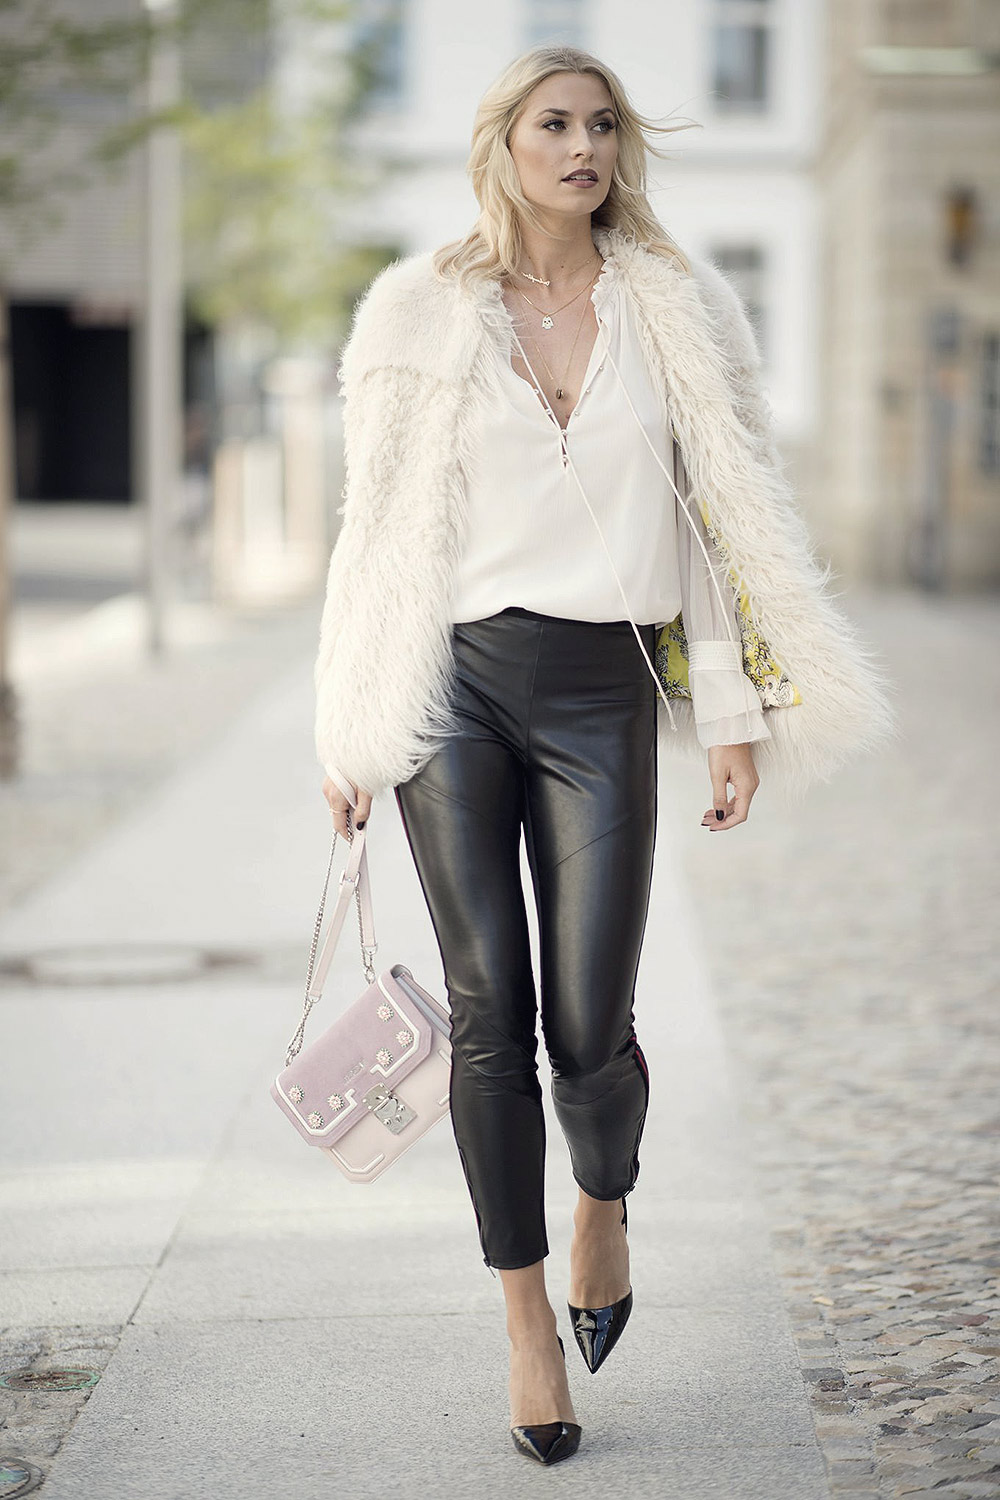 Lena Gercke on her way to Marc Cain Fashion Show